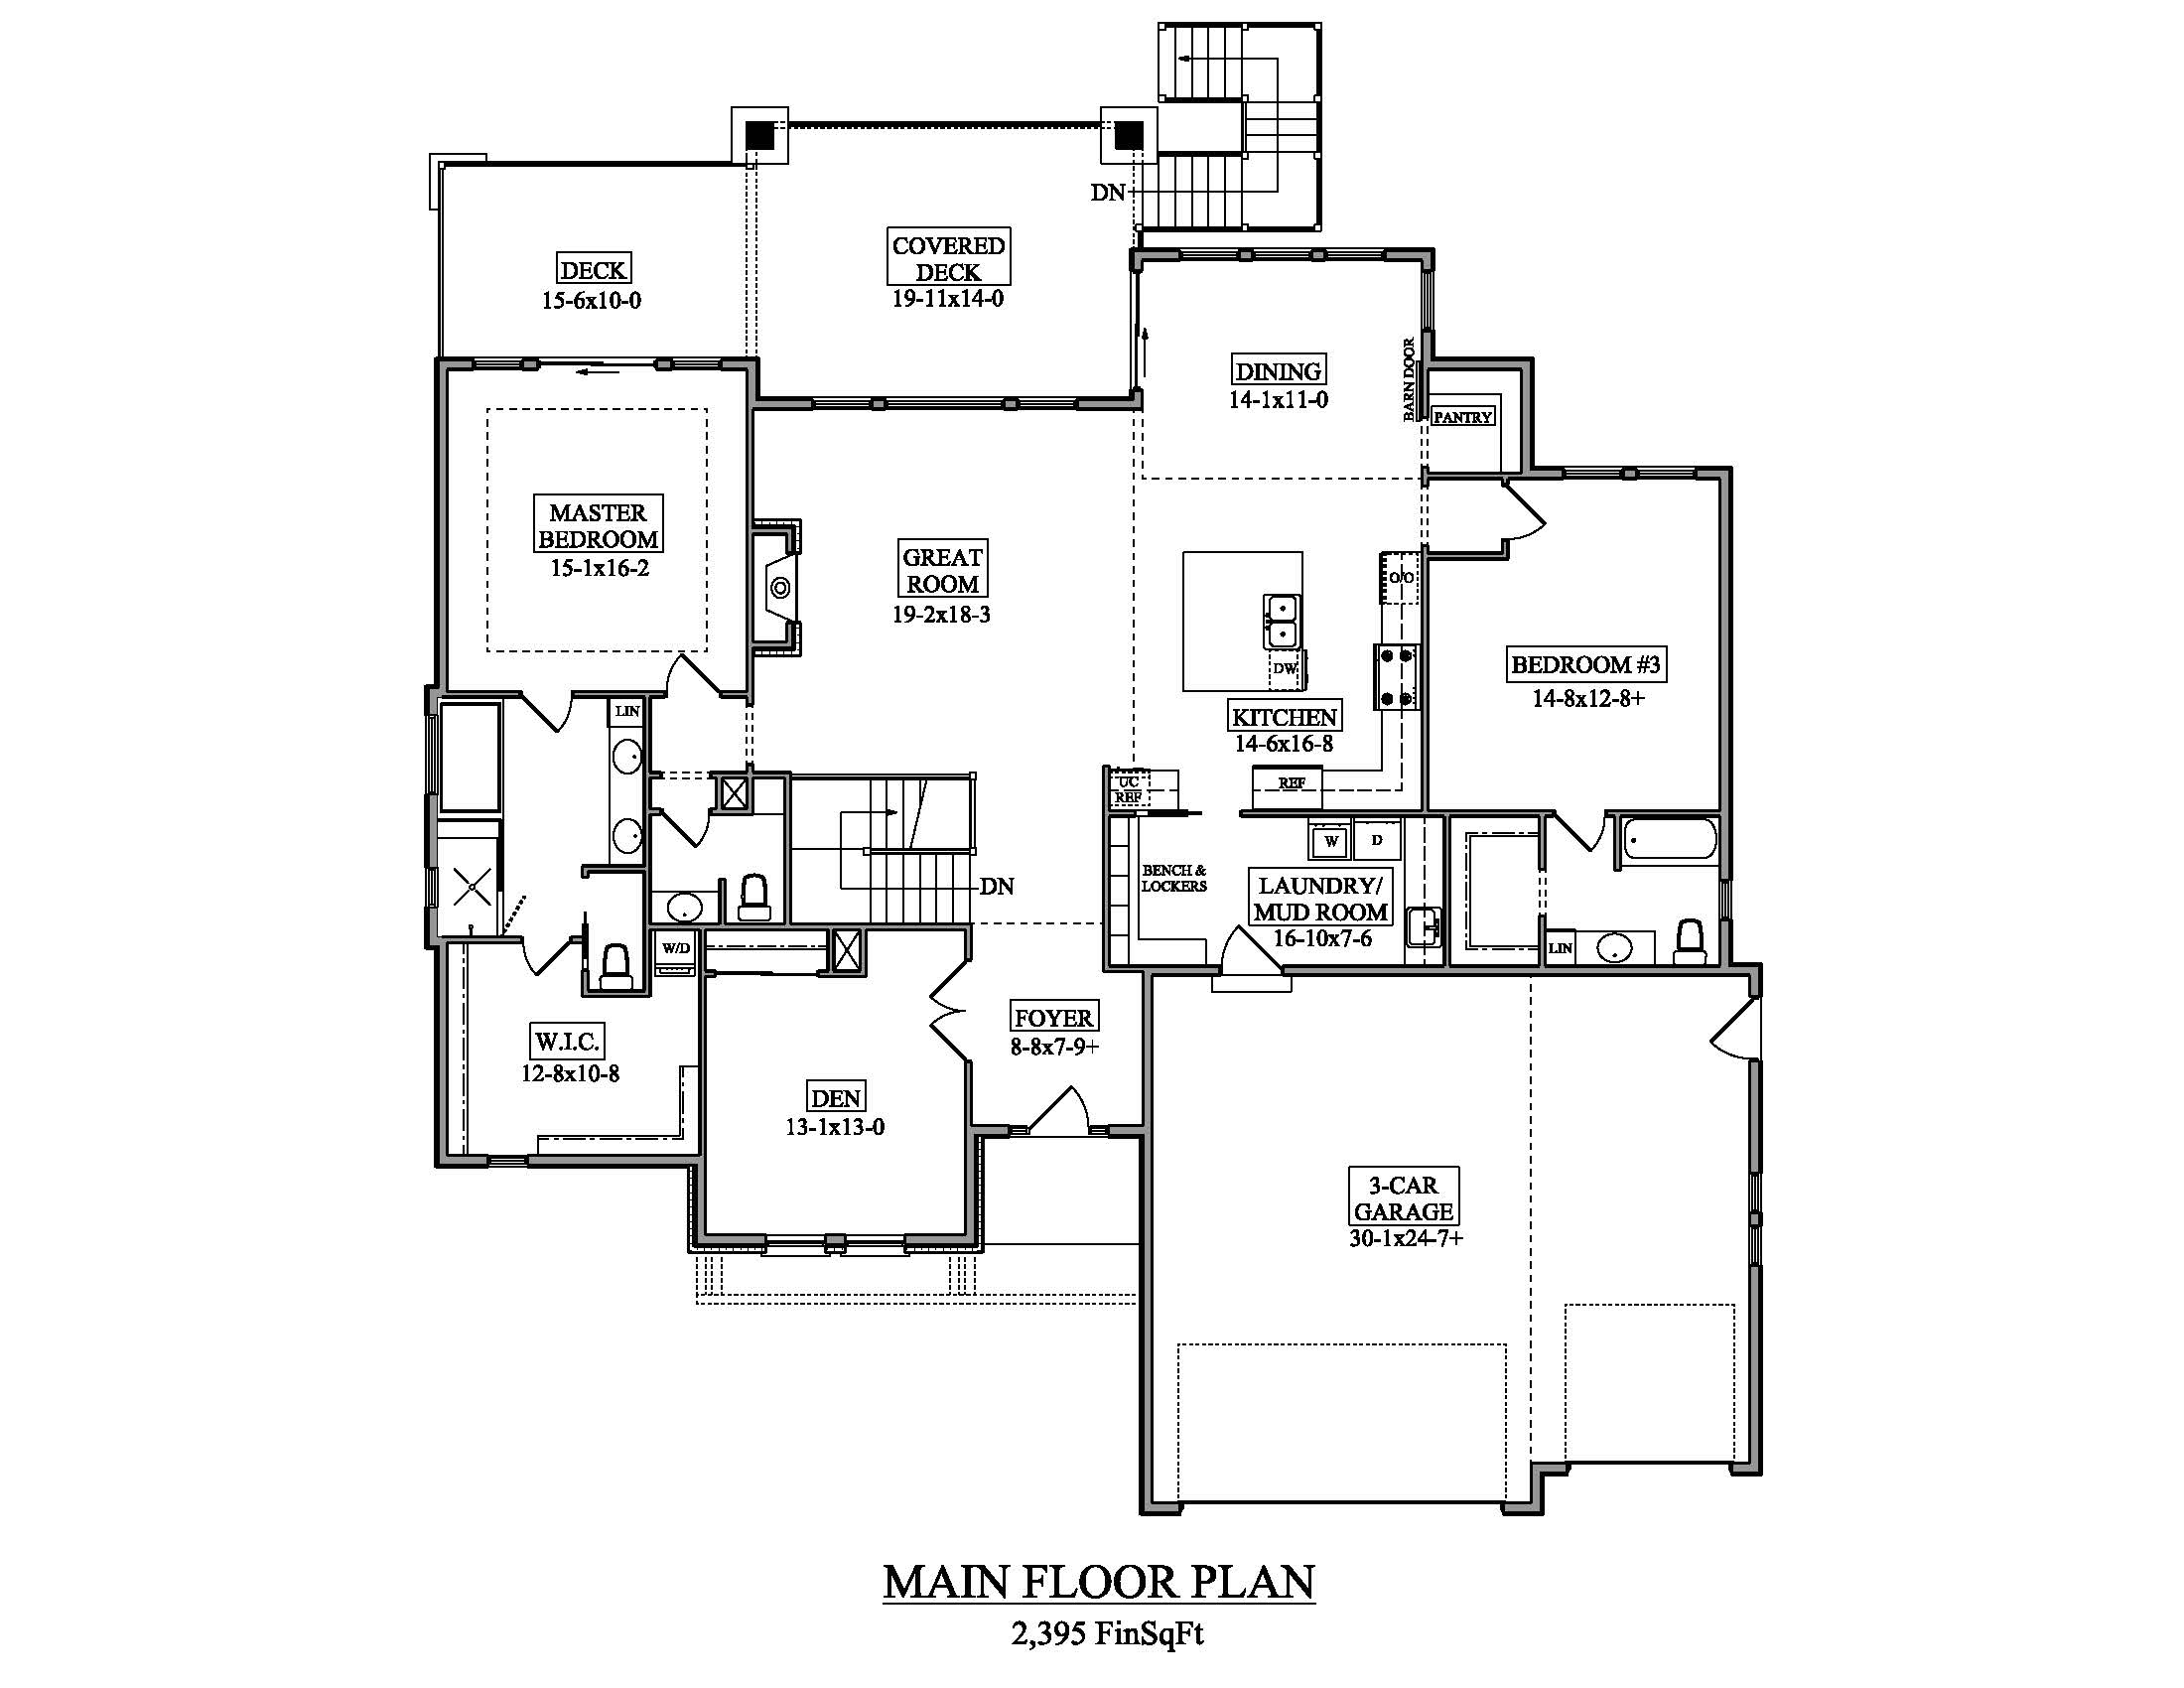 floor plans apex developments llc rh apexdevelopmentsllc com  3 bedroom house plans on a slab